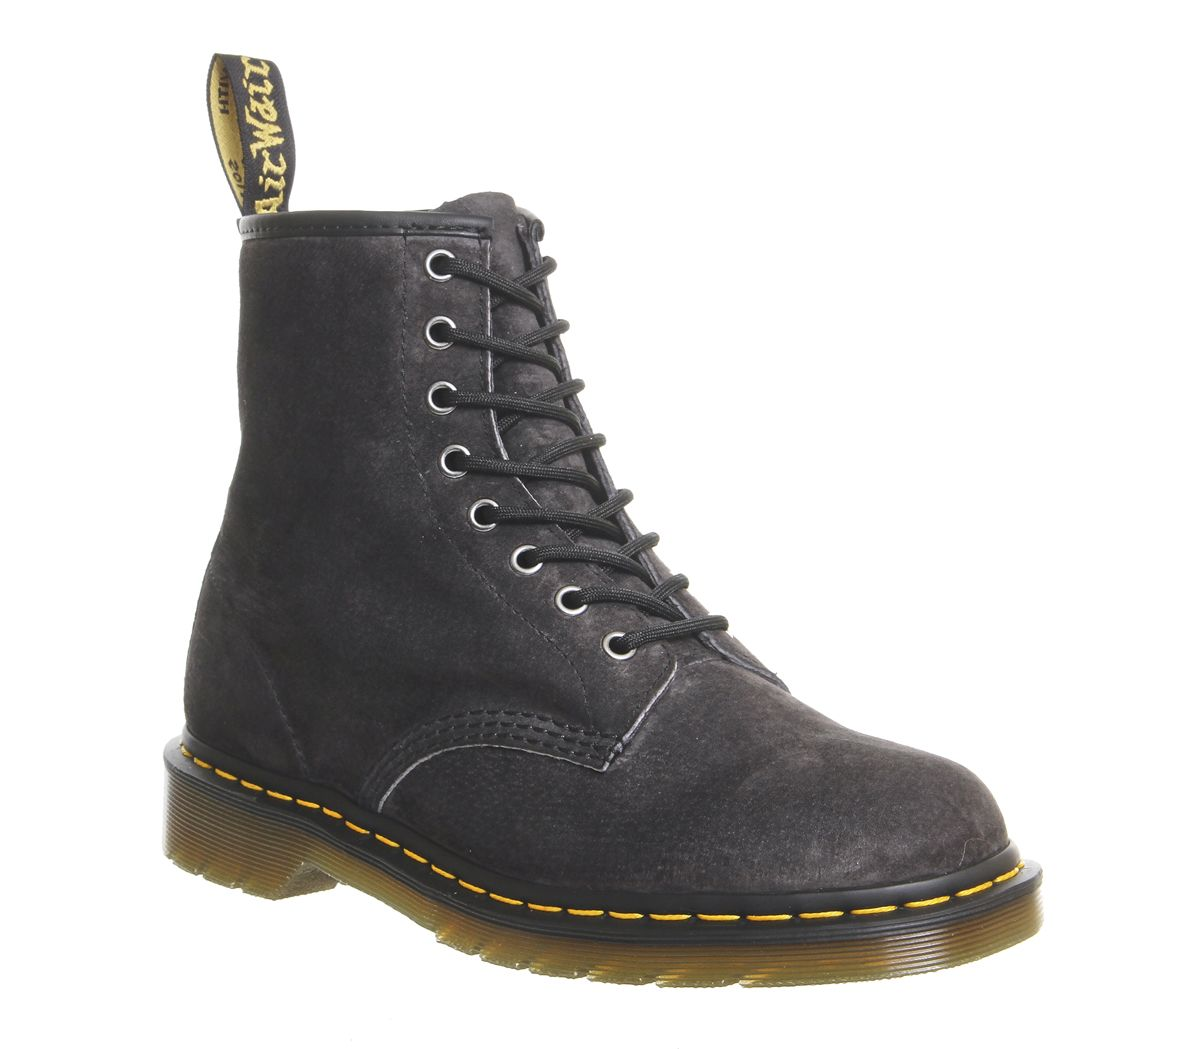 a0f05b5ed04 Dr. Martens 8 Eye Lace Boots Graphite Grey Soft Buck - Boots